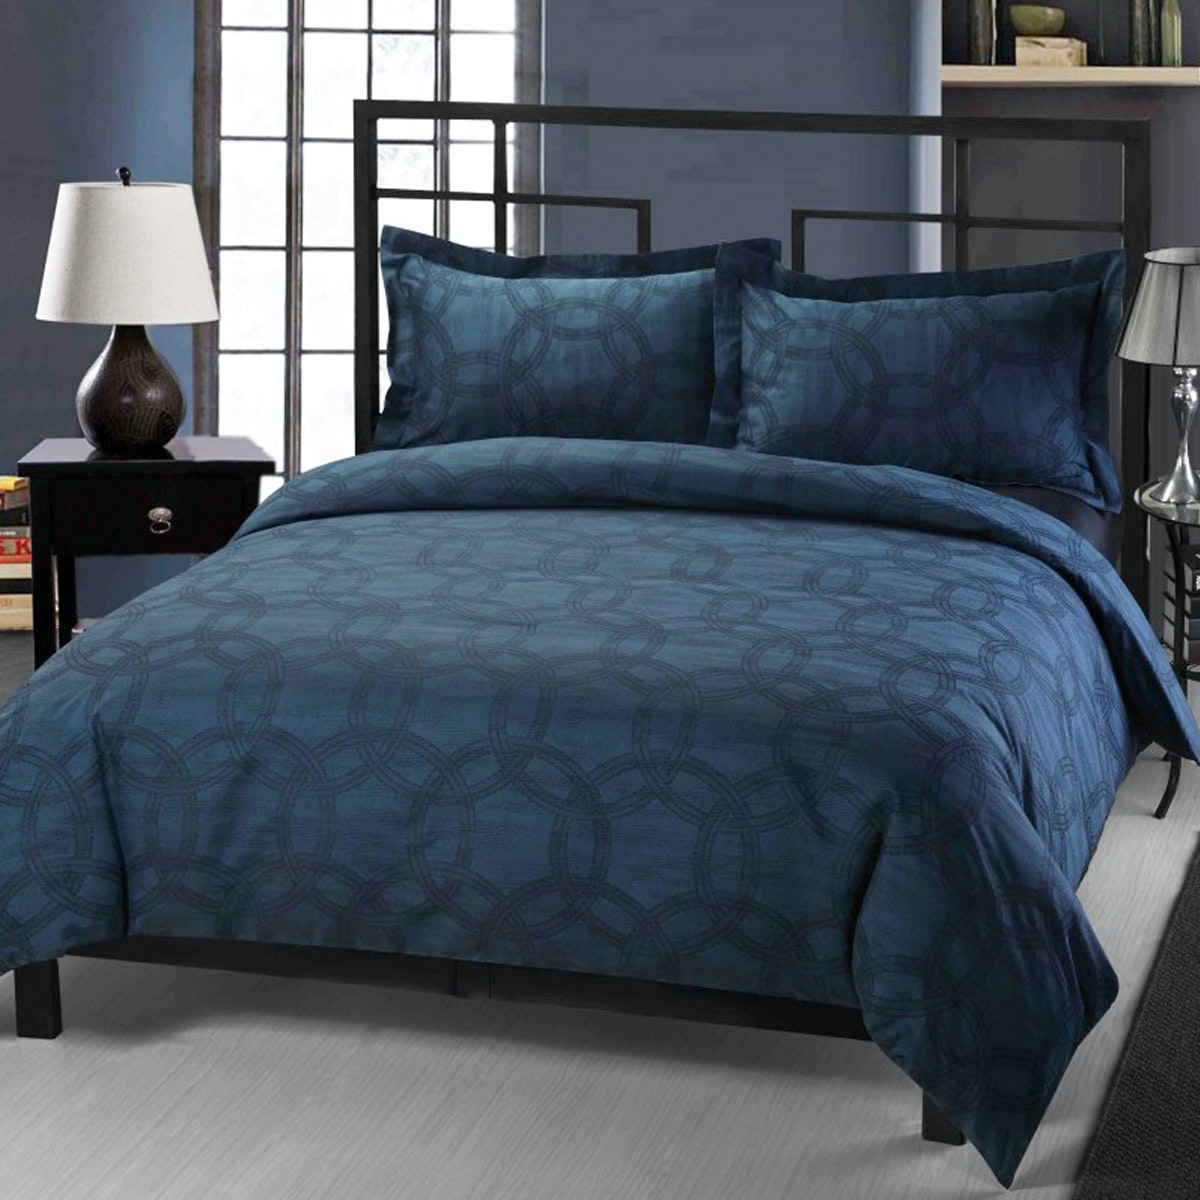 Palmerhaus Set Bedcover Mirage Navy Bedding Set 180x200x40cm